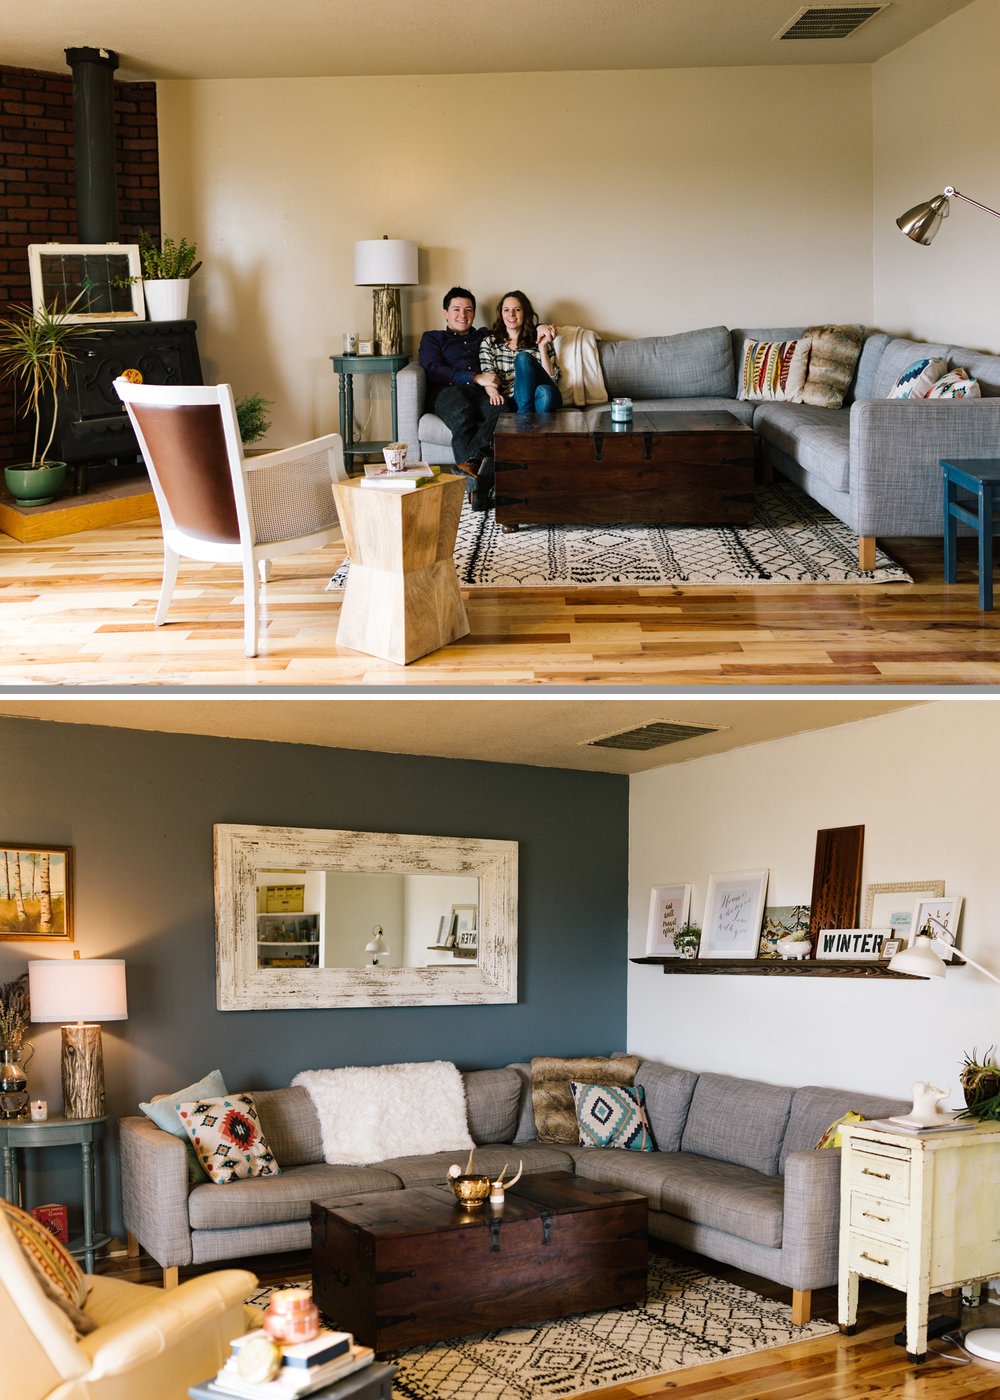 The top photo is from my very first session last February. The floors had already been done by the time I arrived, but I love how this space has come together with just a little bit of paint and some carefully curated statement pieces. Love this!